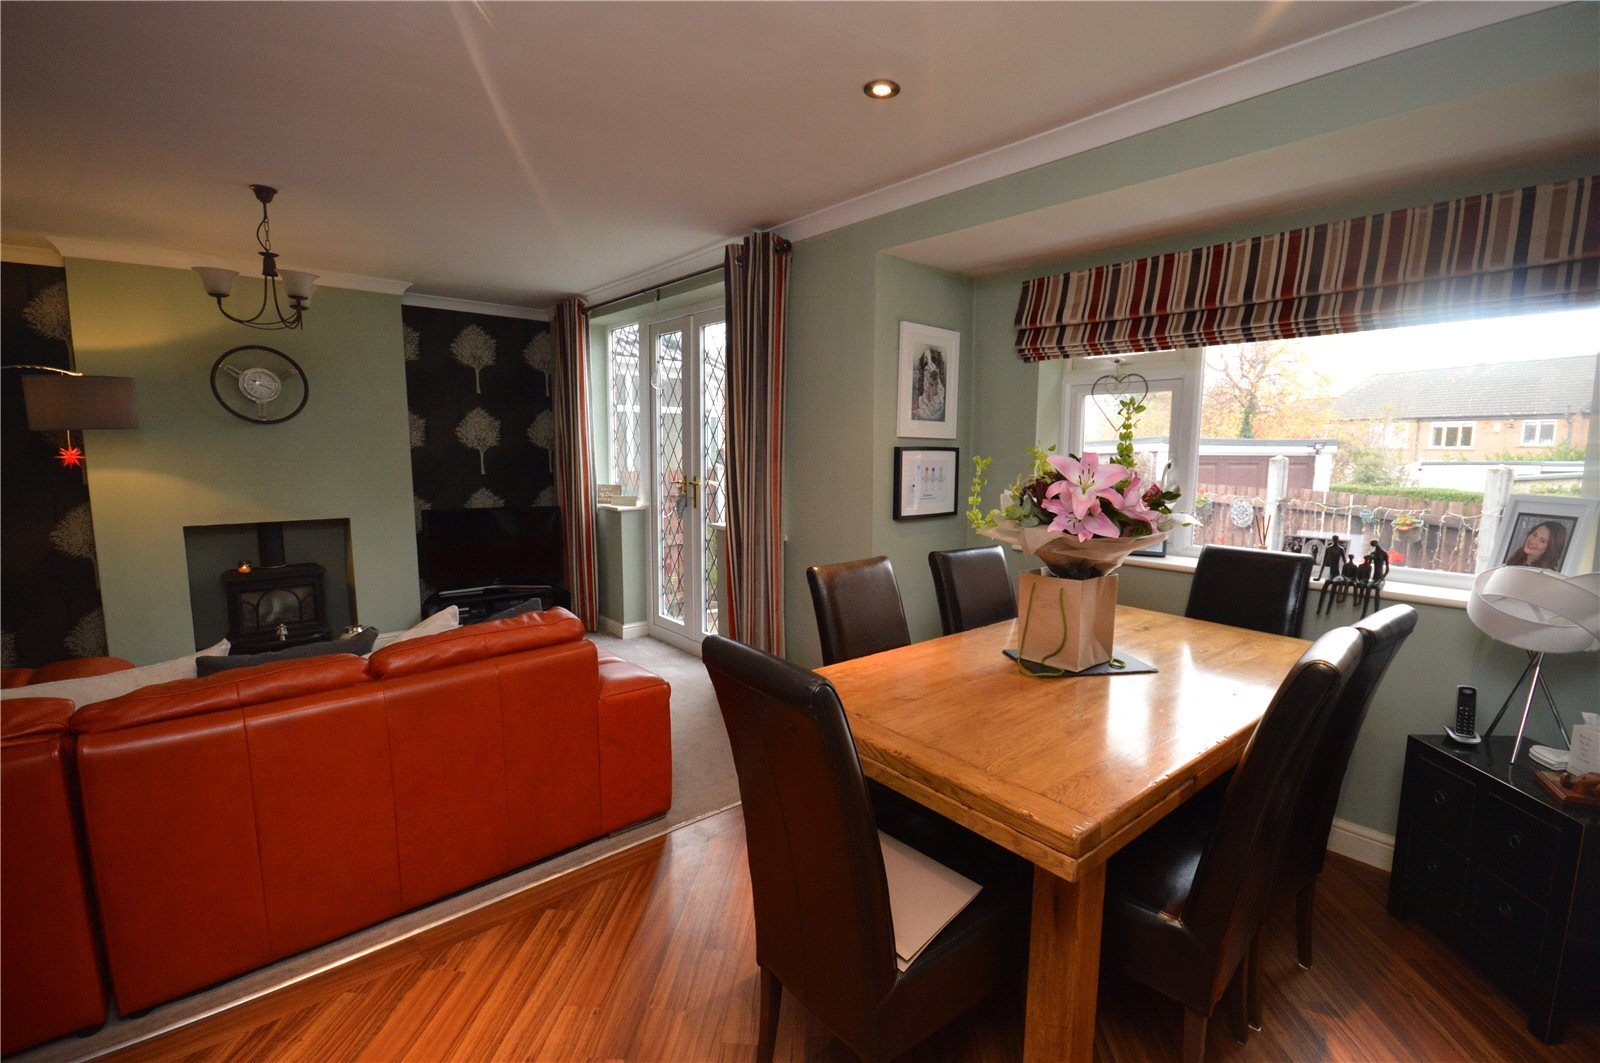 Property for sale in Calvlerley, interior dining room